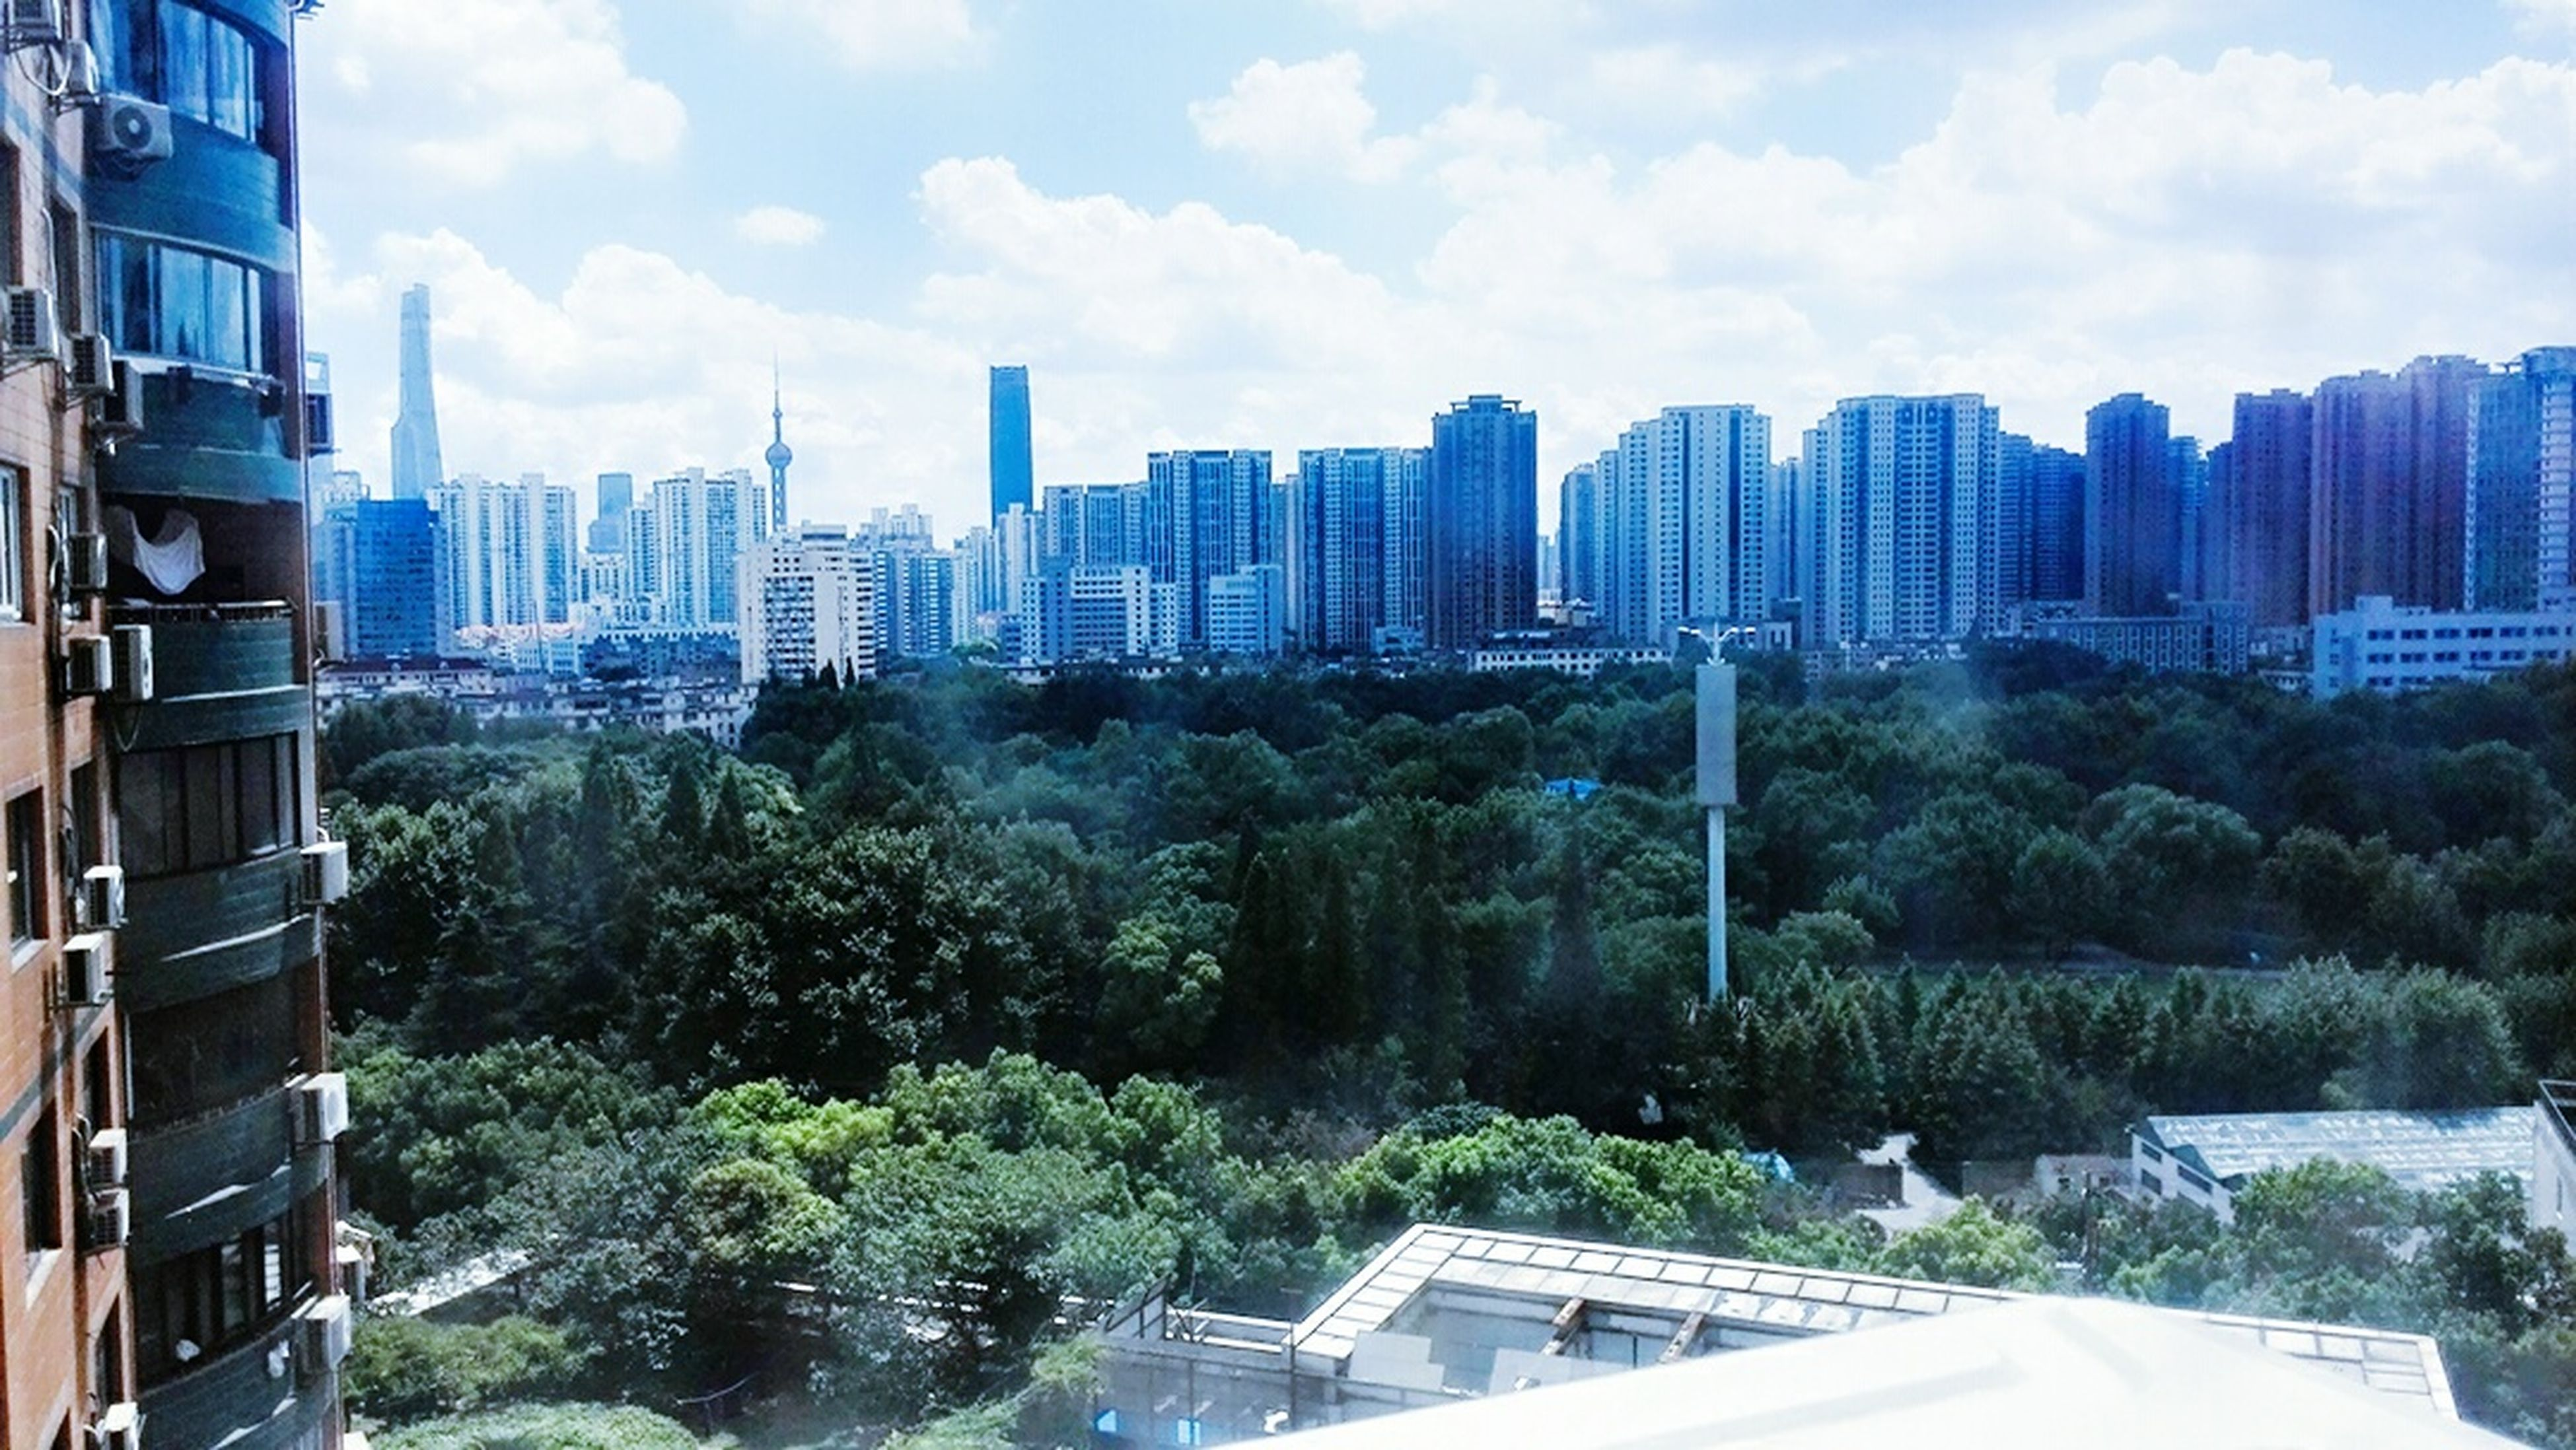 city, sky, growth, tree, cityscape, urban skyline, skyscraper, cloud - sky, architecture, outdoors, building exterior, no people, day, nature